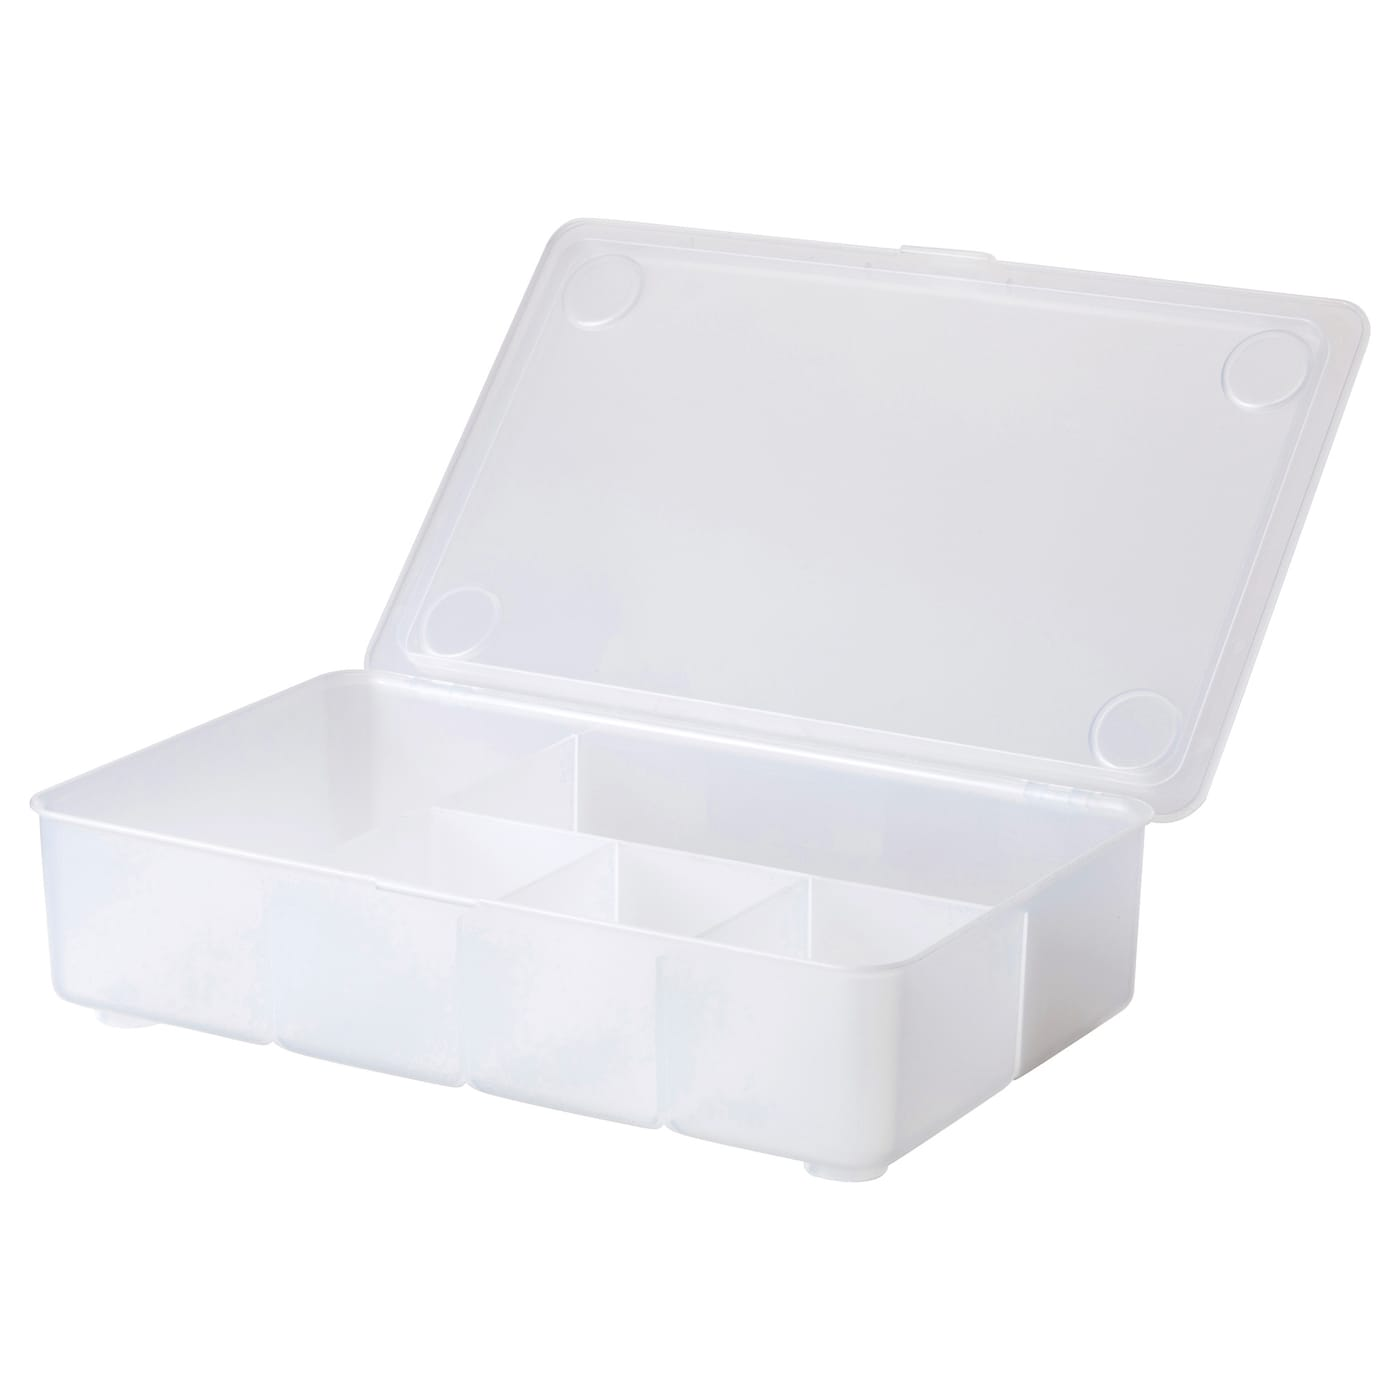 glis box with lid transparent 34x21 cm ikea. Black Bedroom Furniture Sets. Home Design Ideas